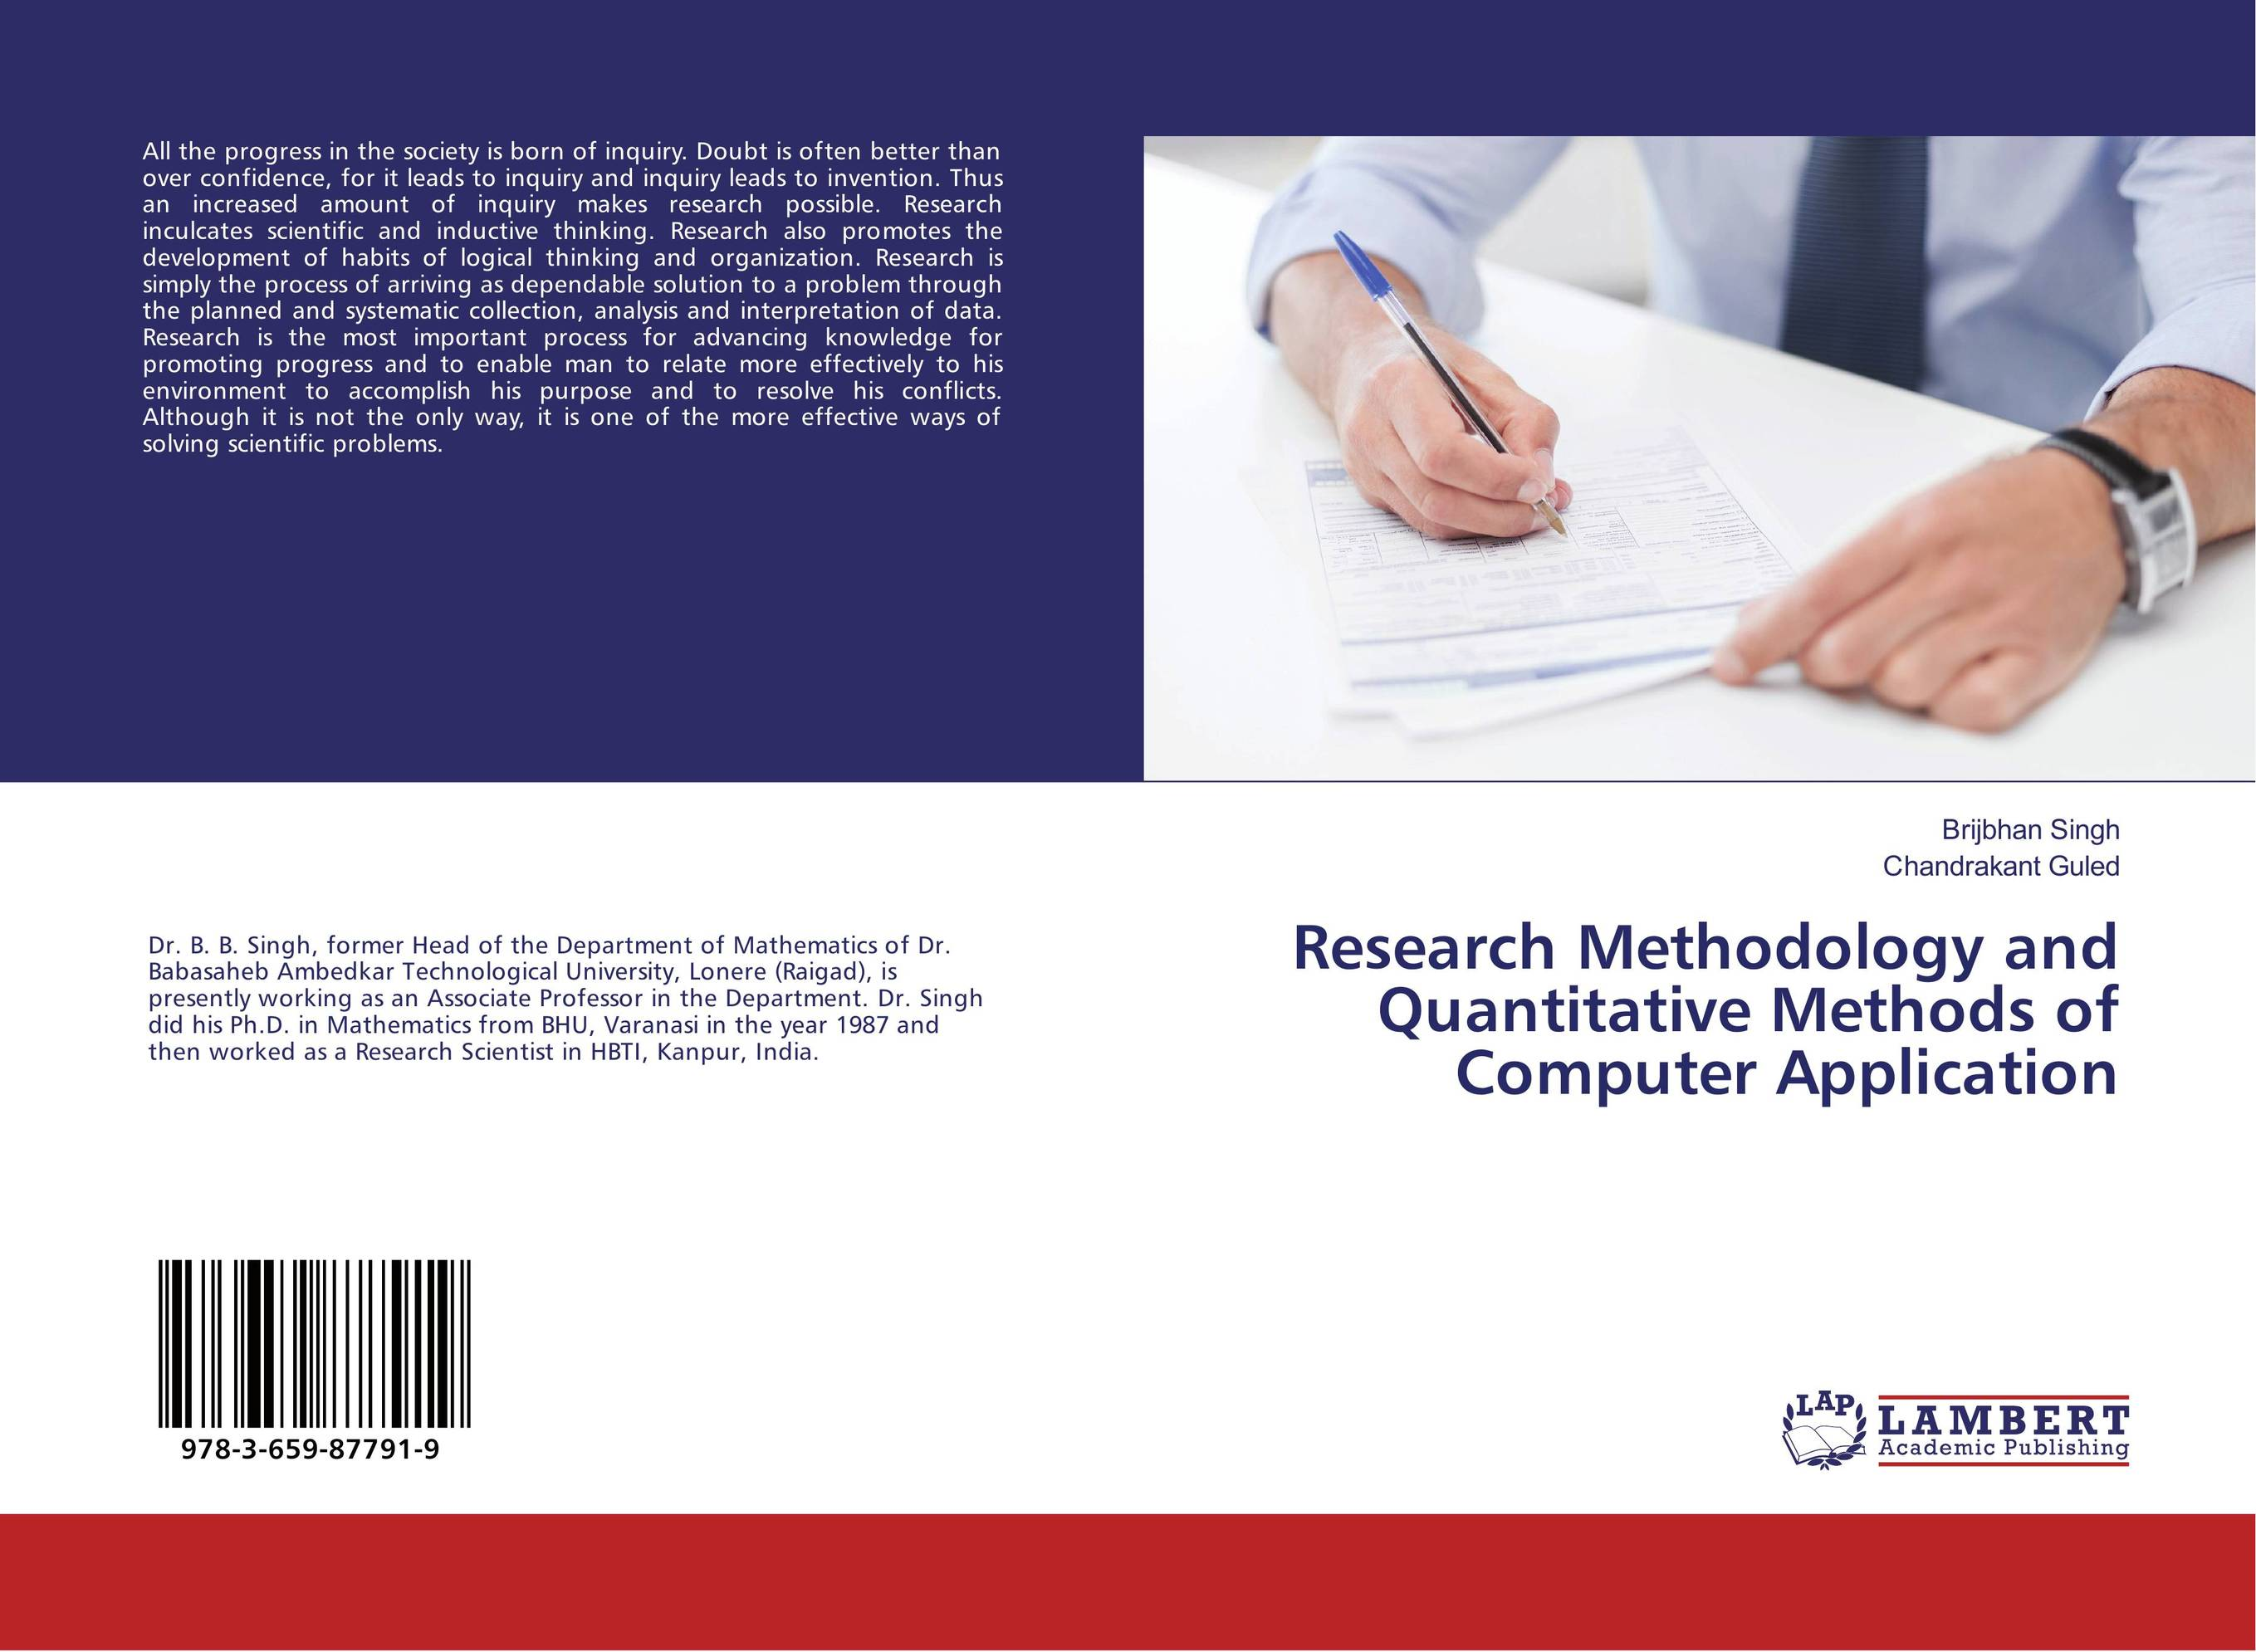 Research Methodology and Quantitative Methods of Computer Application joseph lane an answer to the inquiry into the state of the nation